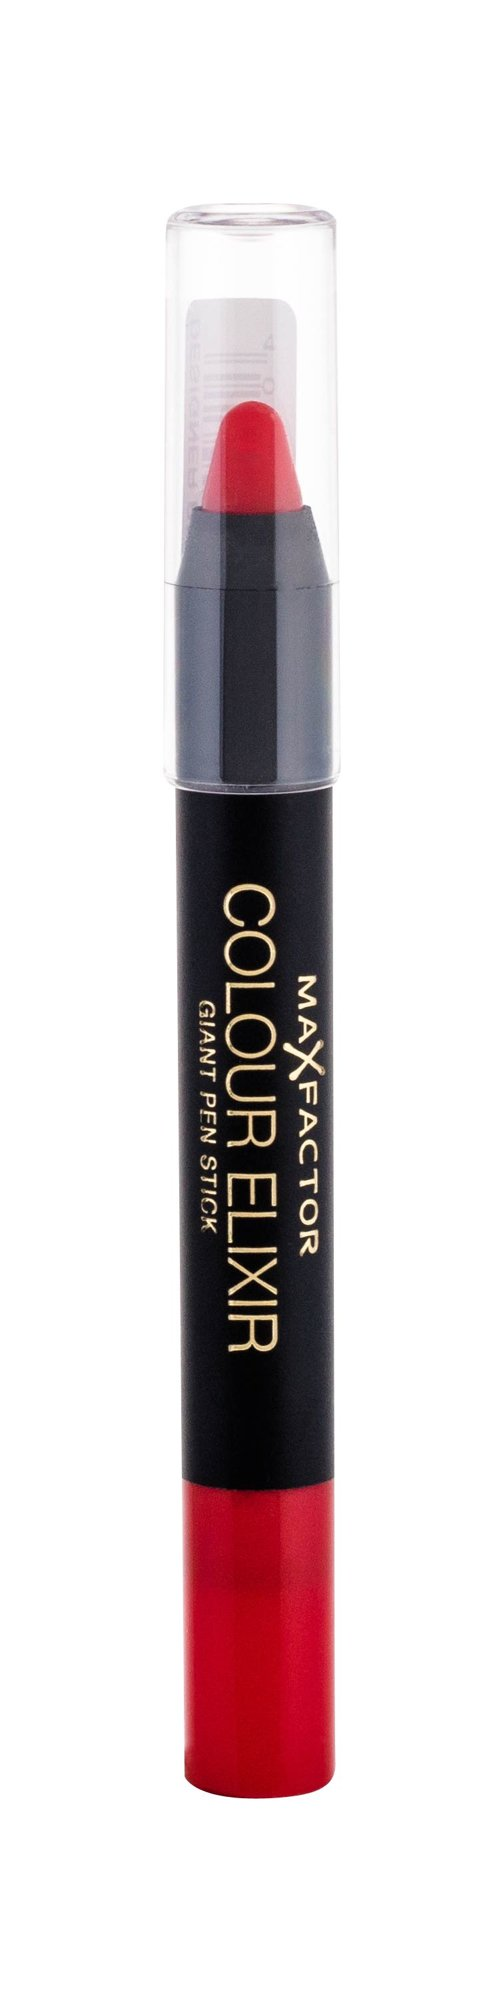 Max Factor Colour Elixir Cosmetic 8ml 30 Designer Blossom